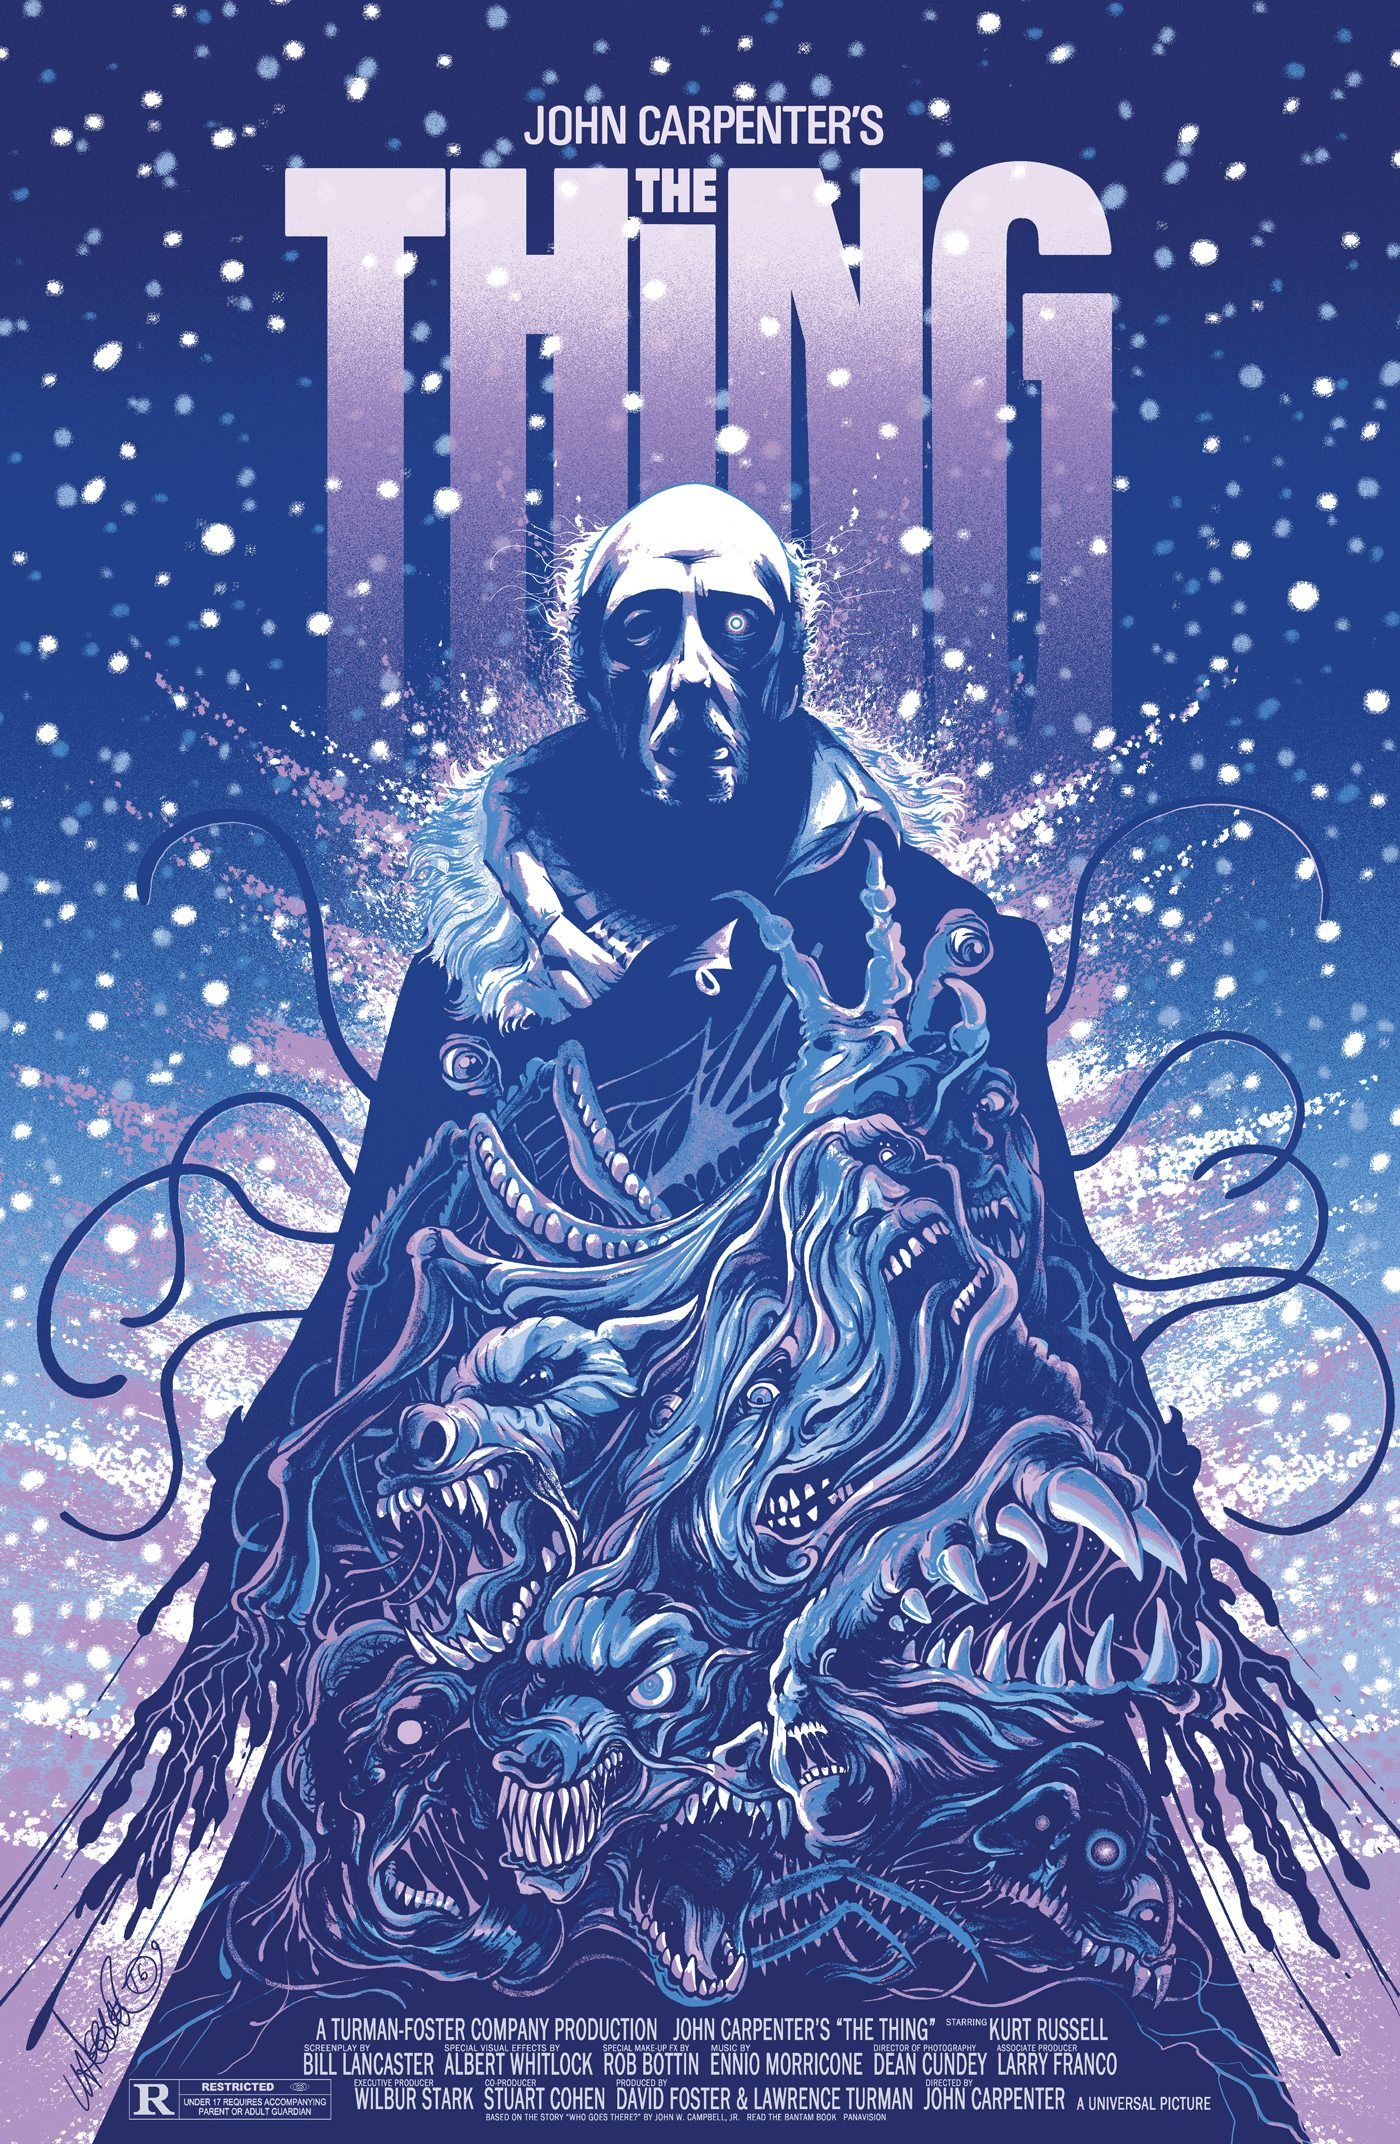 Poster The Thing From Another World Vintage Cult Sci-Fi Wall Art Print